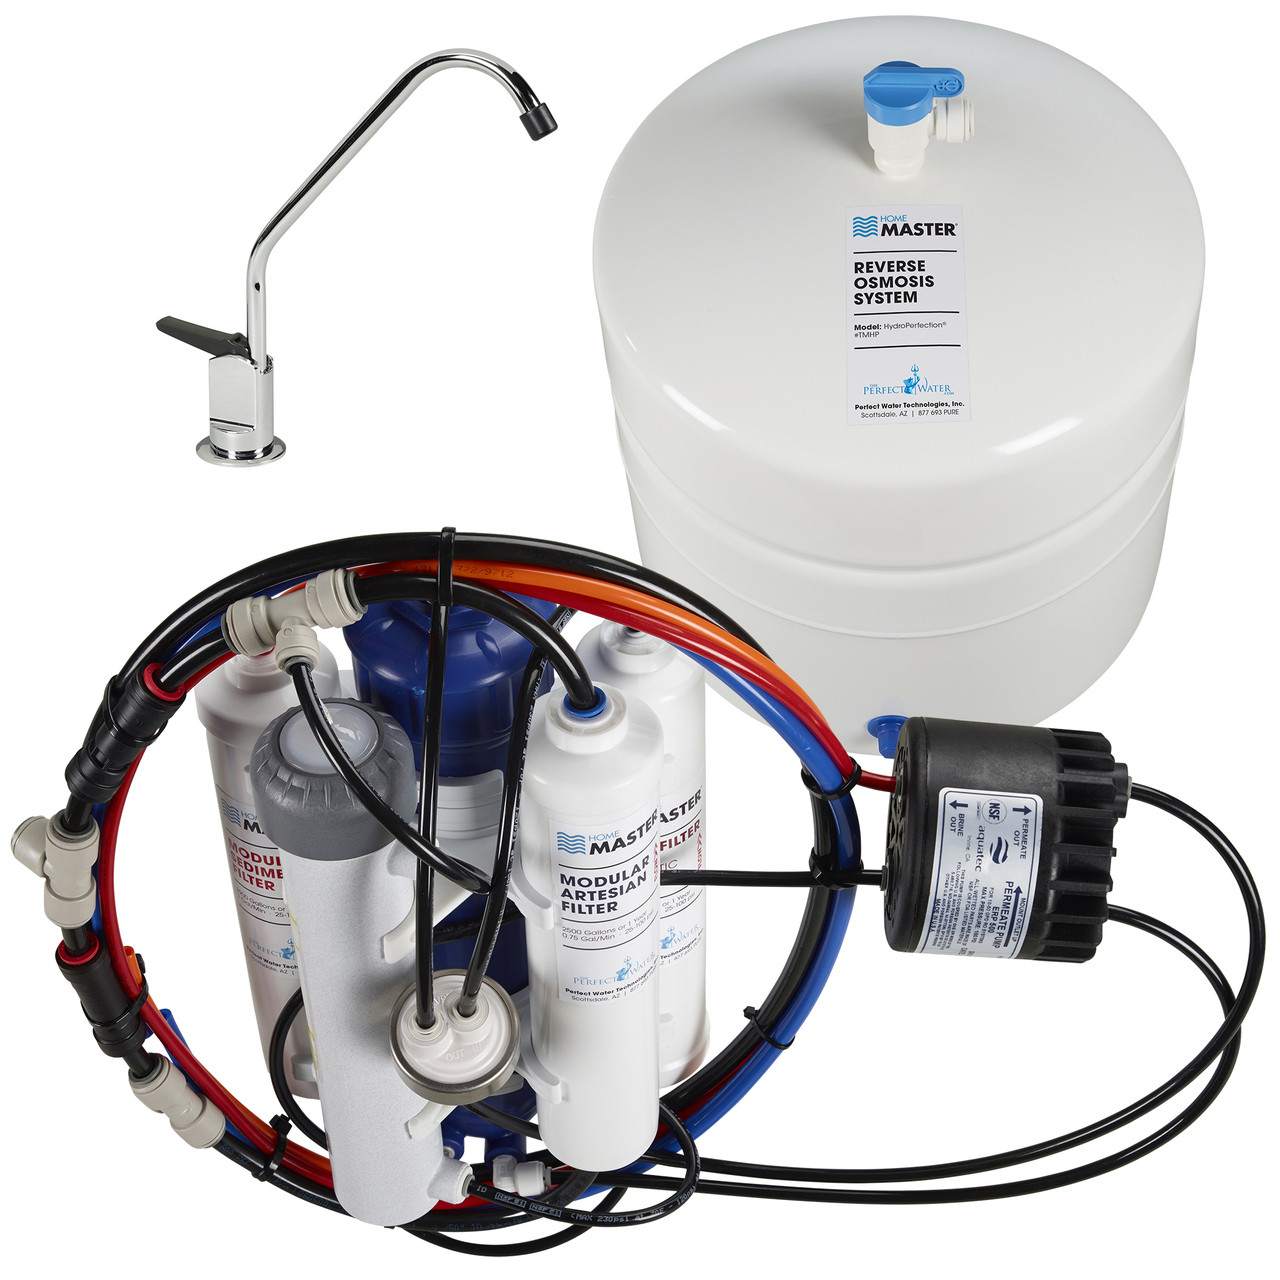 Home Water Filter System Home Master Hydroperfection Reverse Osmosis Water Filtration System